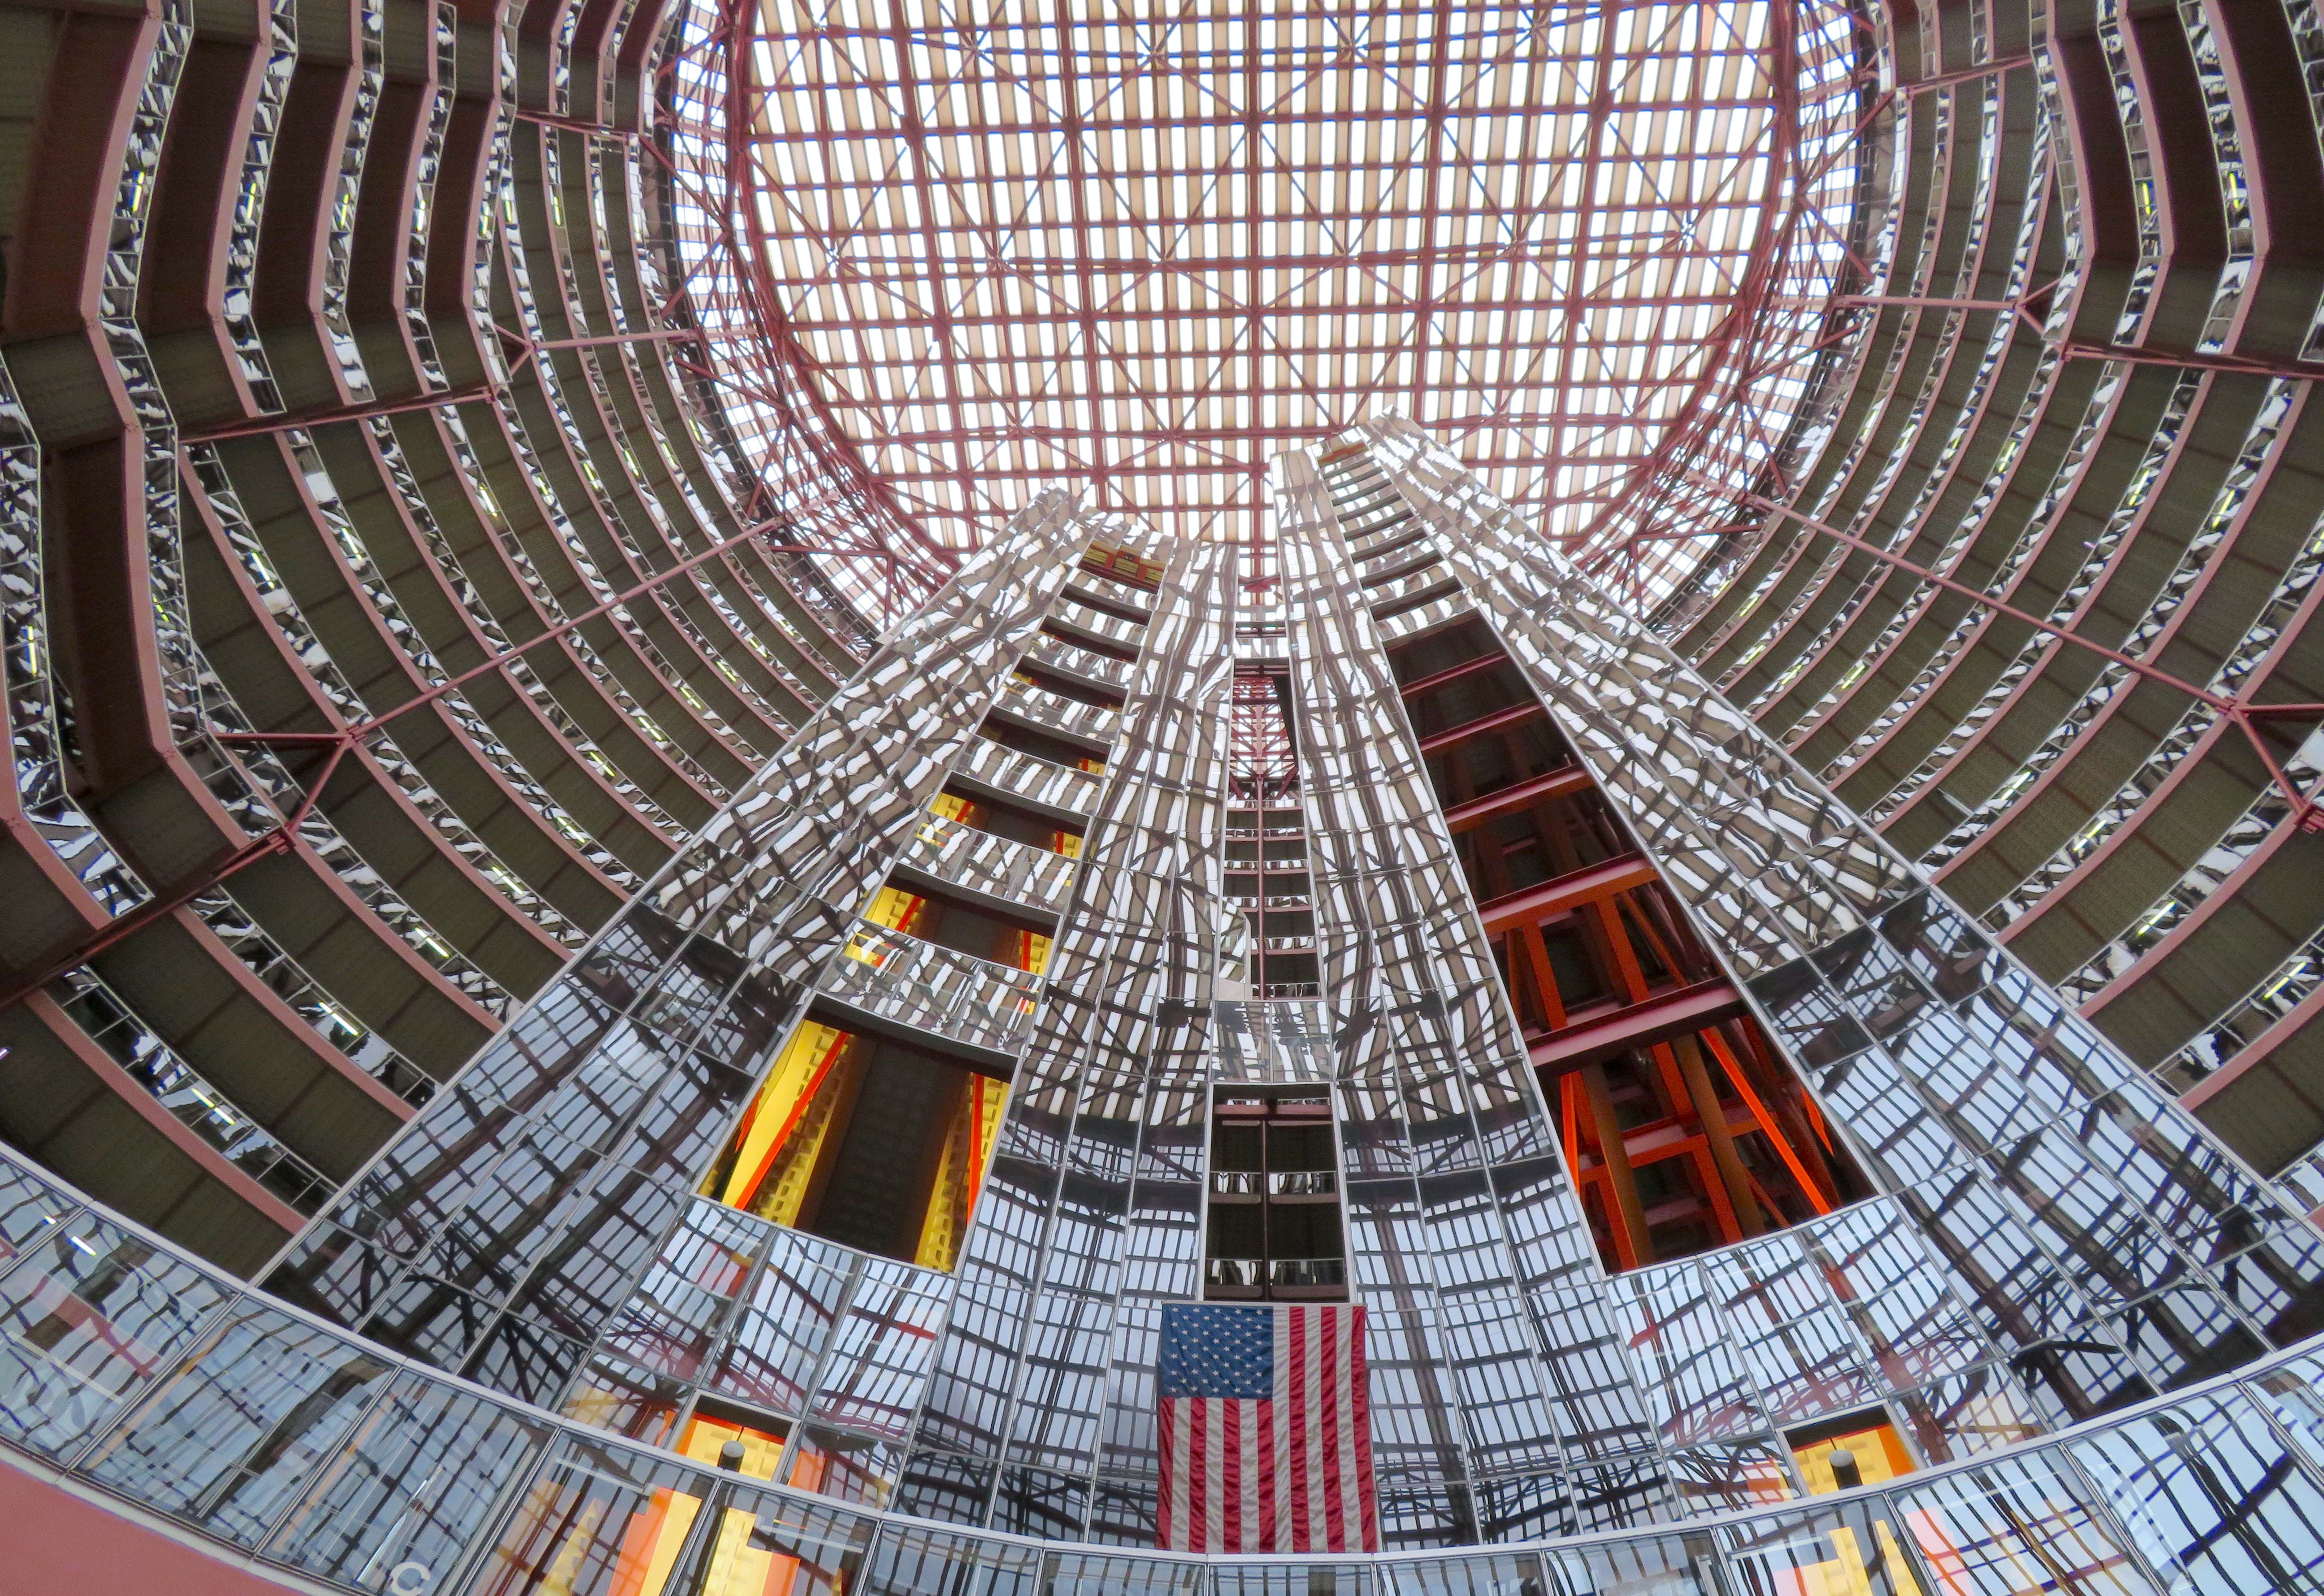 A view upward at a massive circular Thompson Center atrium ringed with offices. Glass elevator shafts rise in the center and reflect the surrounding architecture.